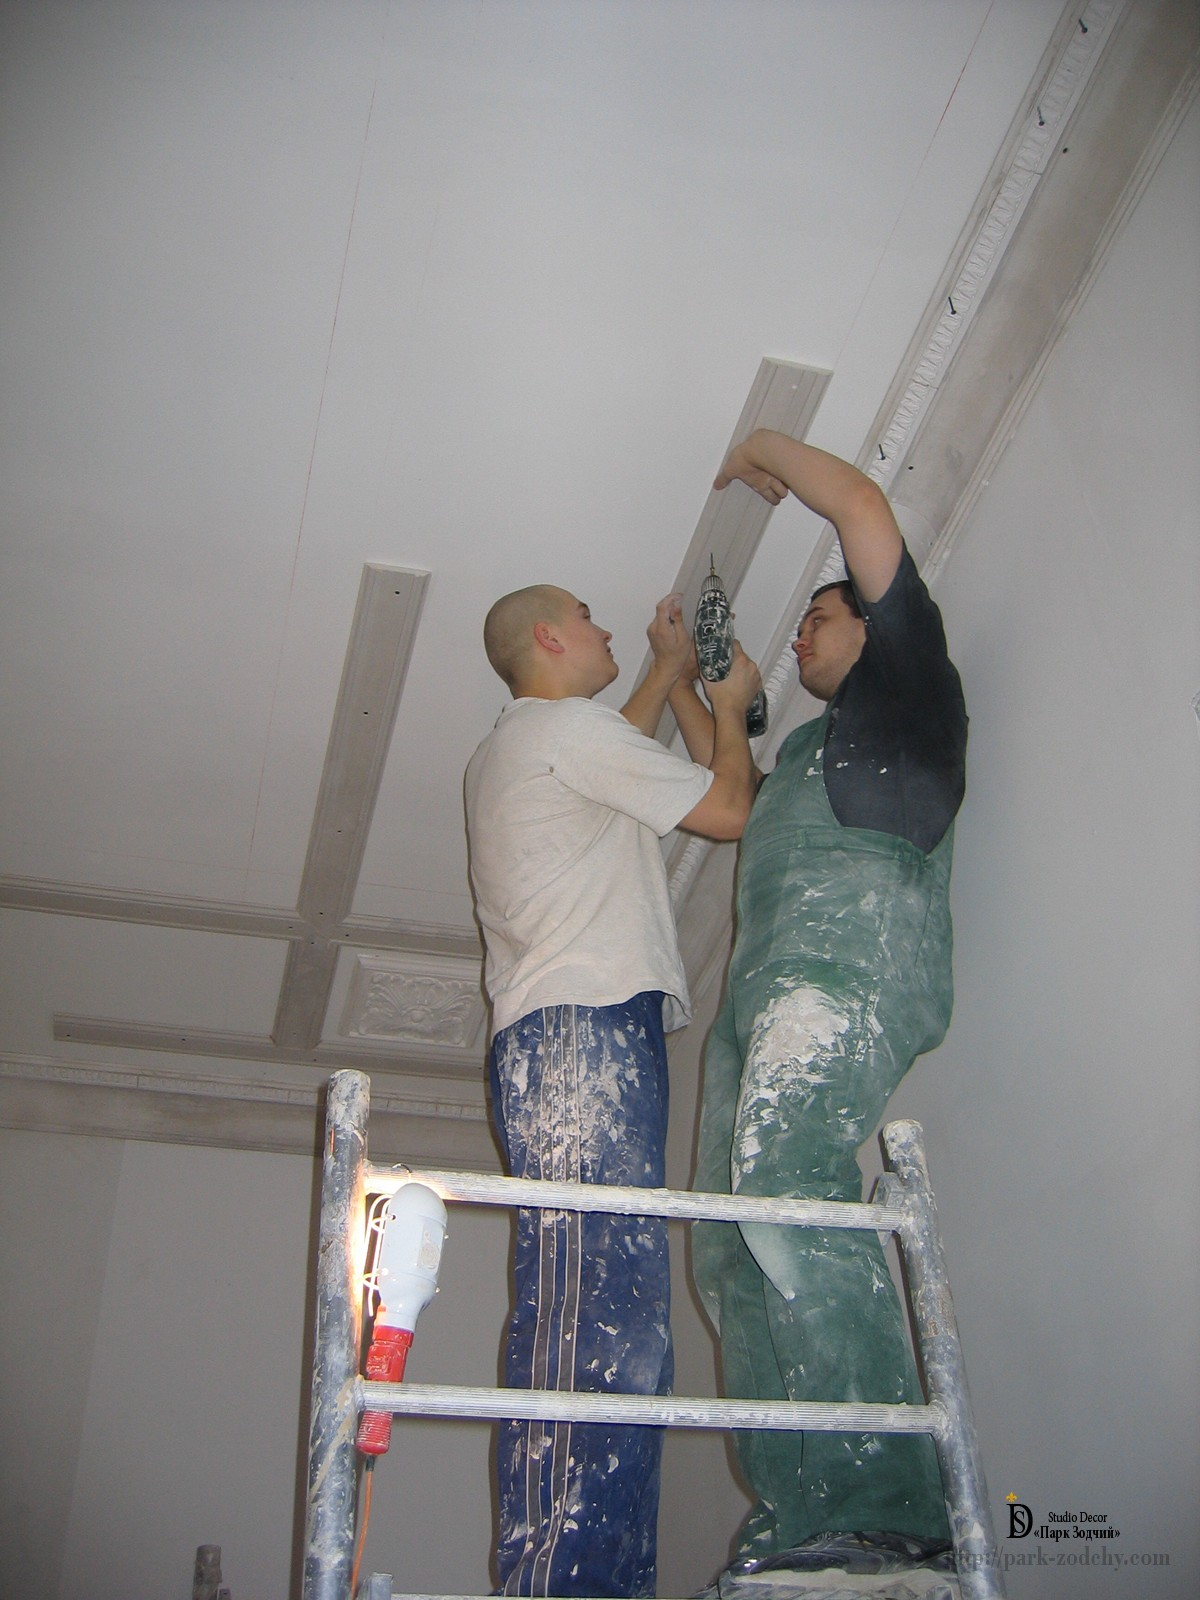 installation of the molding on the ceiling